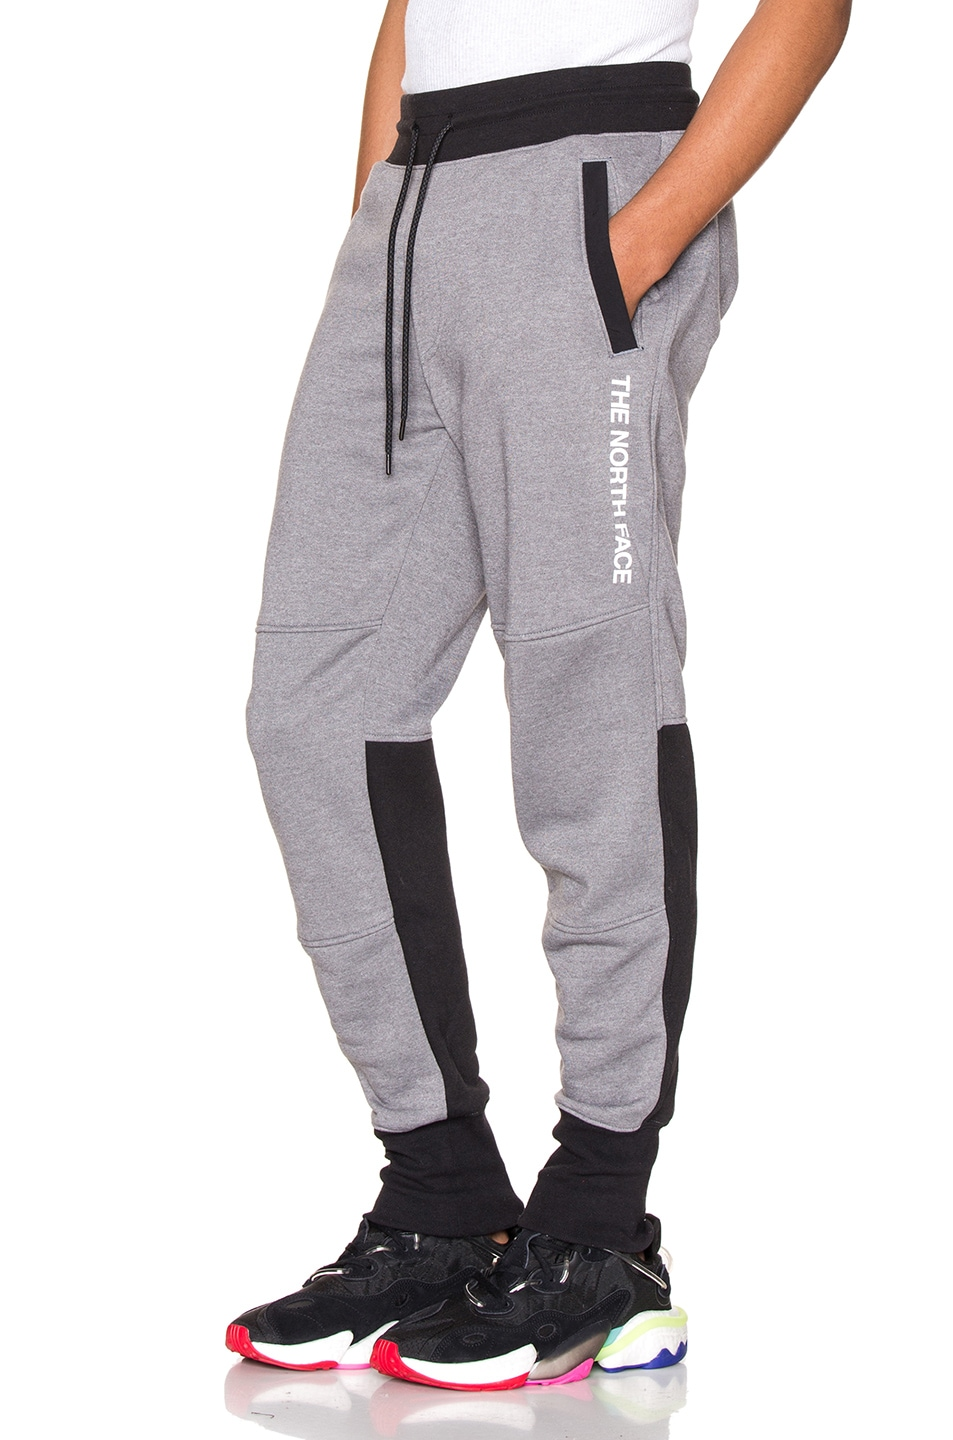 Image 1 of The North Face NSE Graphic Pant in TNF Medium Grey Heather